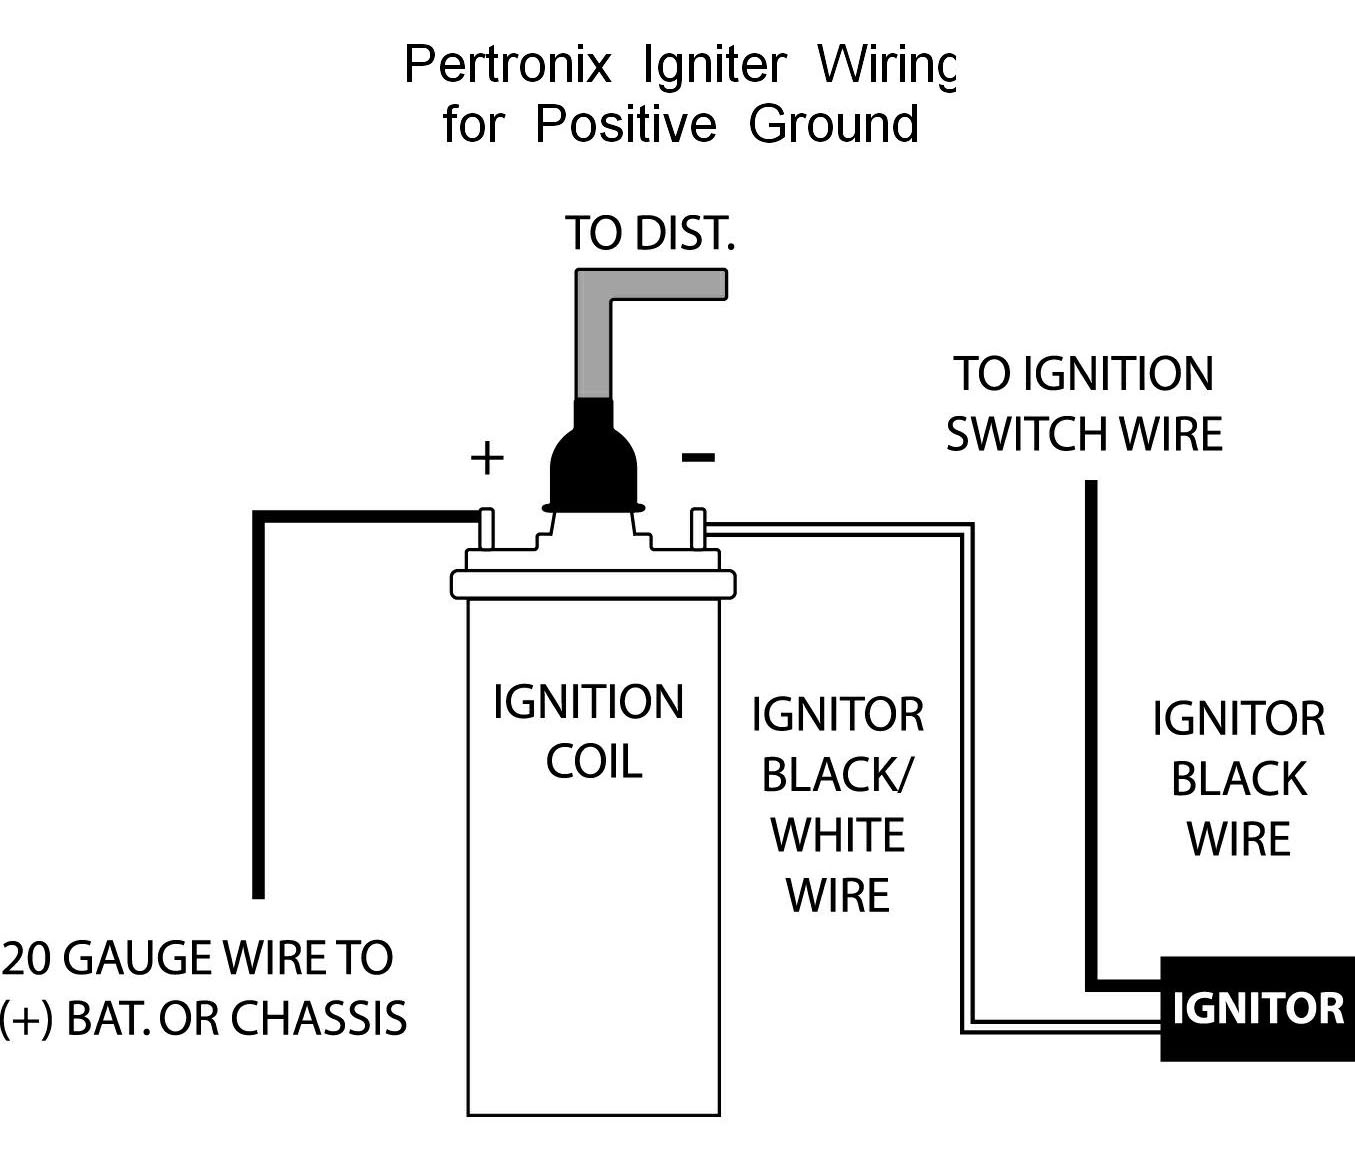 Pertronix Positive Ground Wiring - Pertronix Ignitor Wiring Diagram